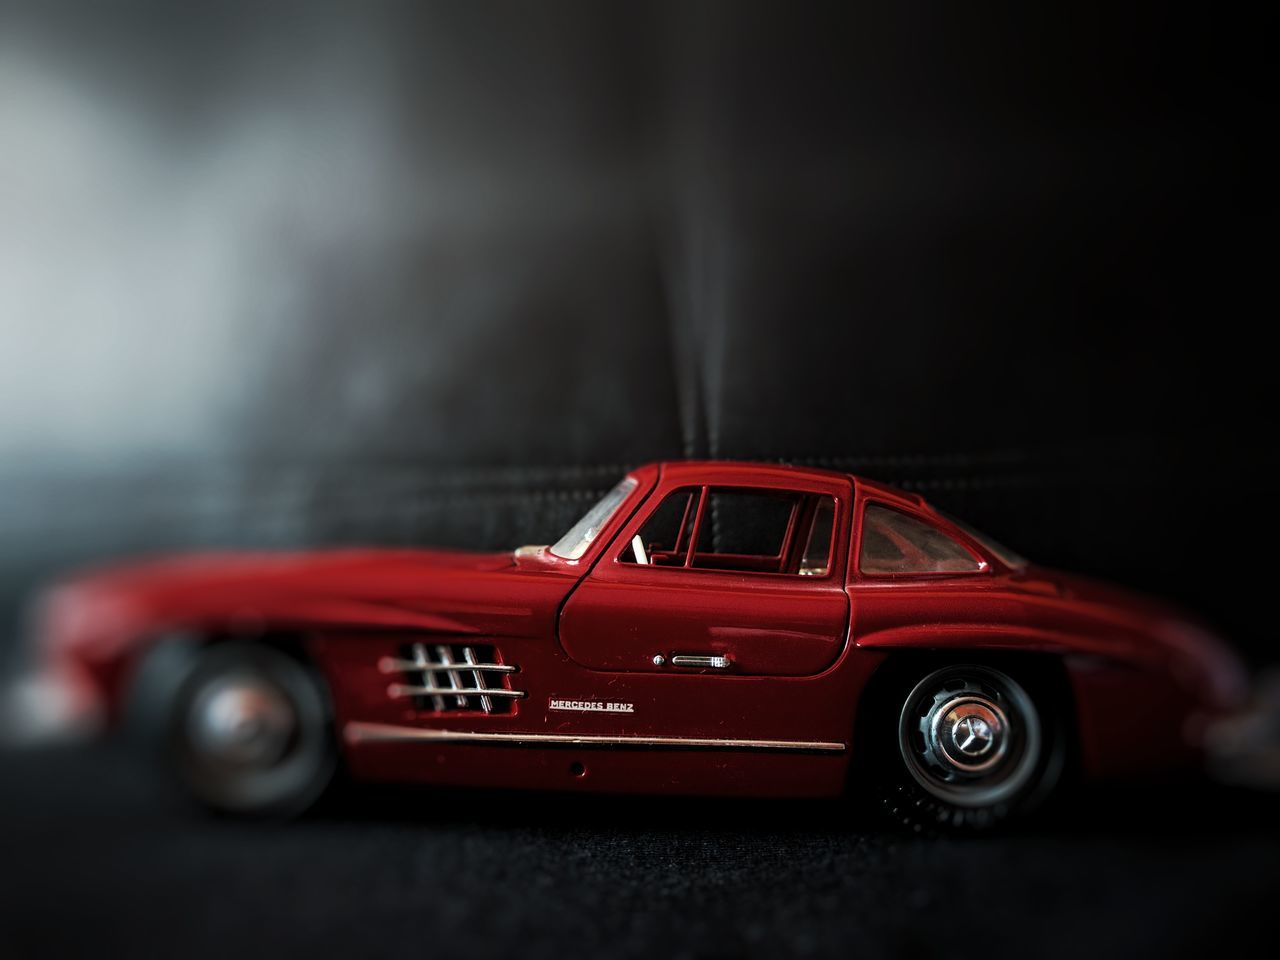 Car Red Old-fashioned Land Vehicle Auto Racing Sports Car Turntable No People Close-up Collector's Car Indoors  Sports Race Sports Track Racecar Record Player Needle